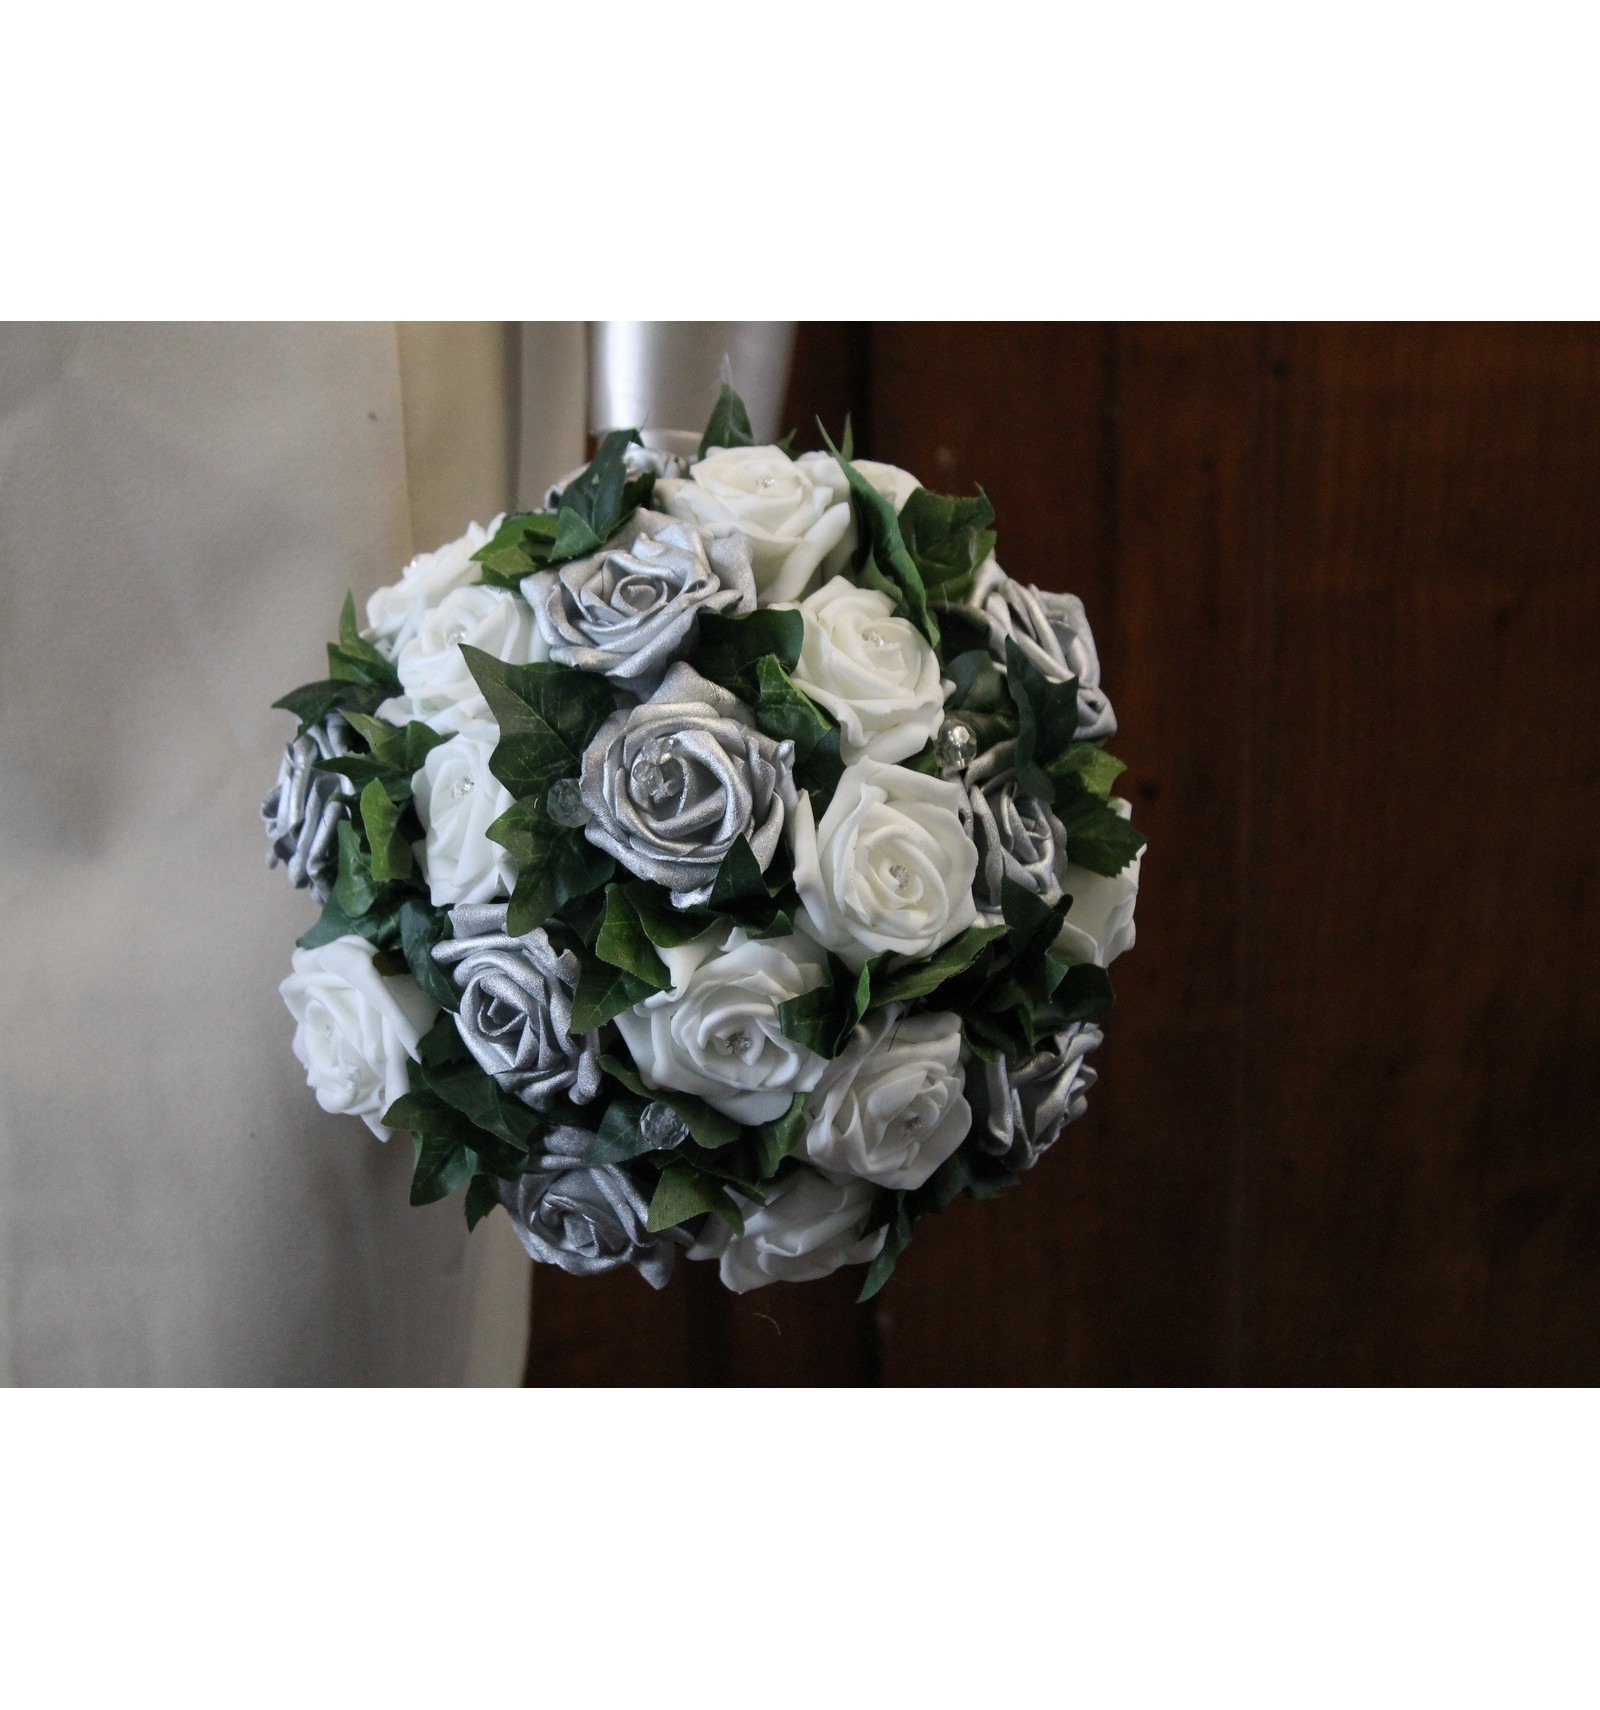 bouquet de mariage blanc et gris argent avec roses. Black Bedroom Furniture Sets. Home Design Ideas